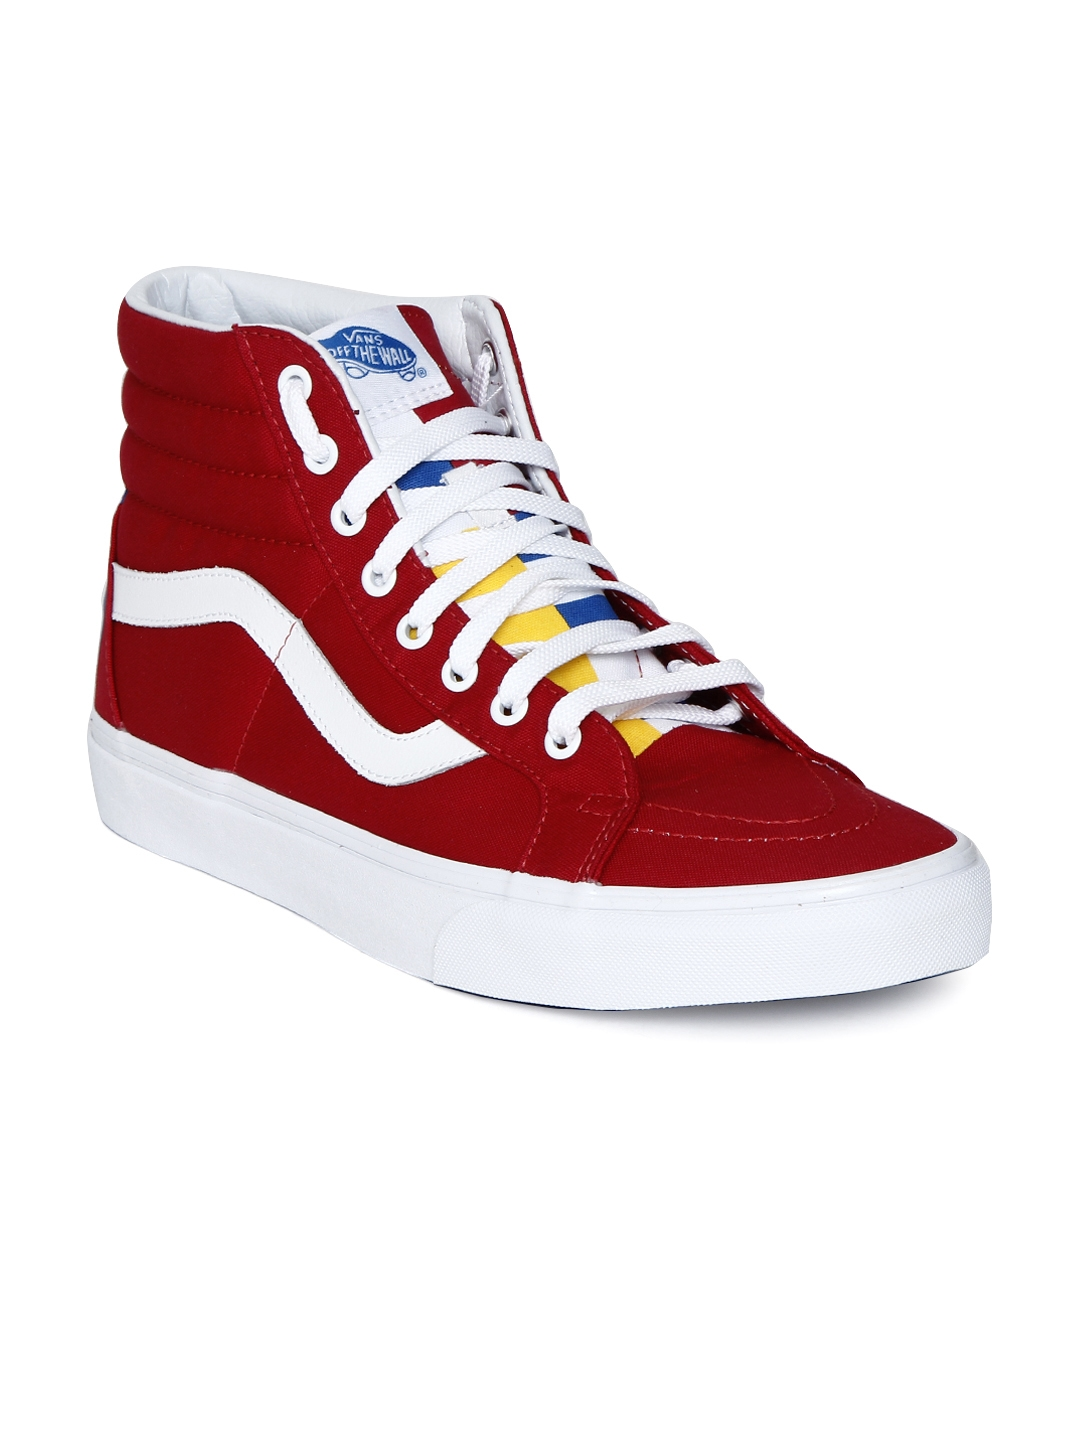 Buy Vans Unisex Red High Top Sneakers - Casual Shoes for Unisex ... 340140db5c